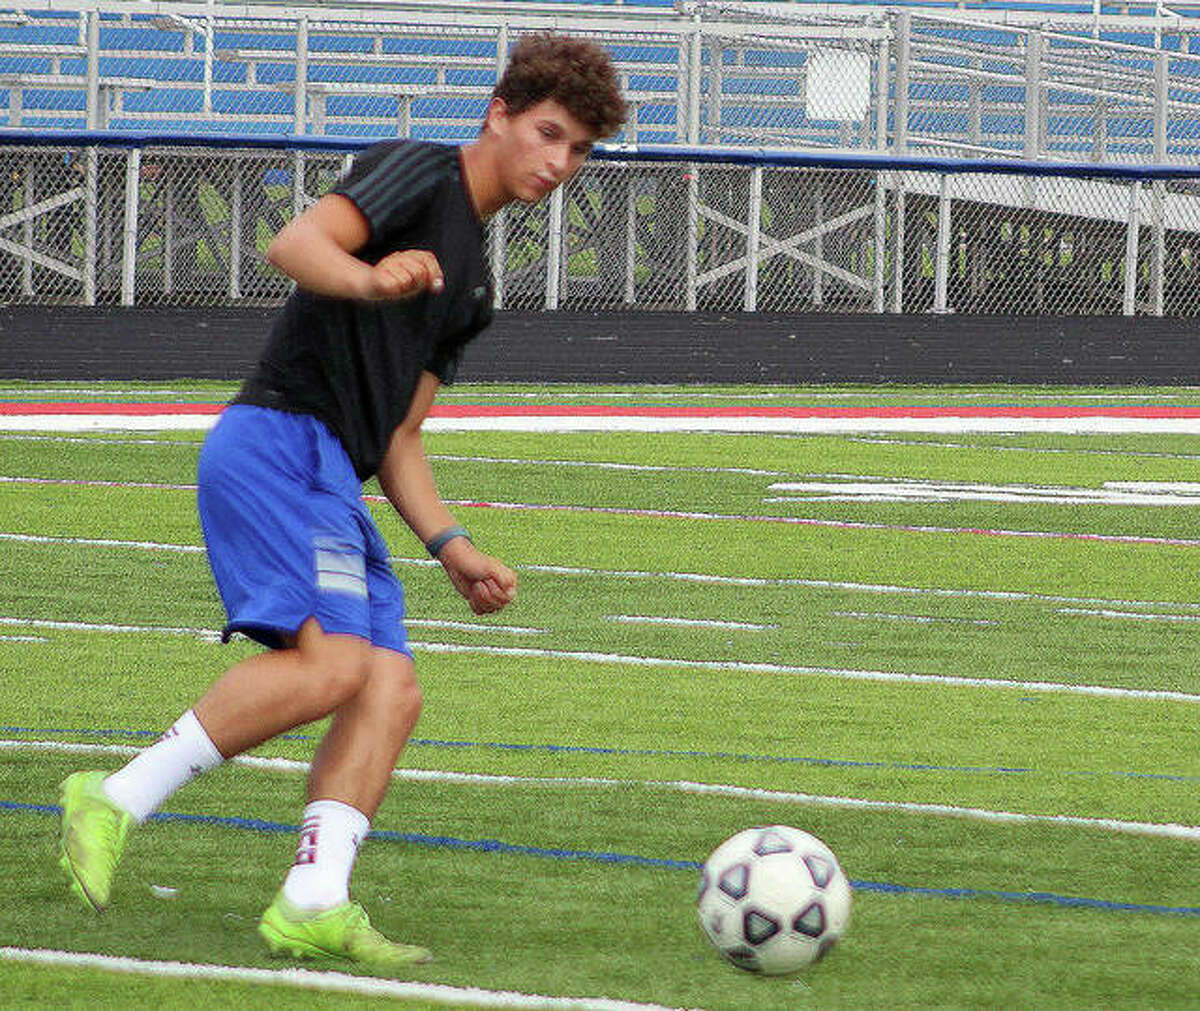 Trieton Park of Carlinville, shown in a recent practice session, leads the St. Louis area in scoring with 13 goals and four assists. he also leads in game-winning goals with three.